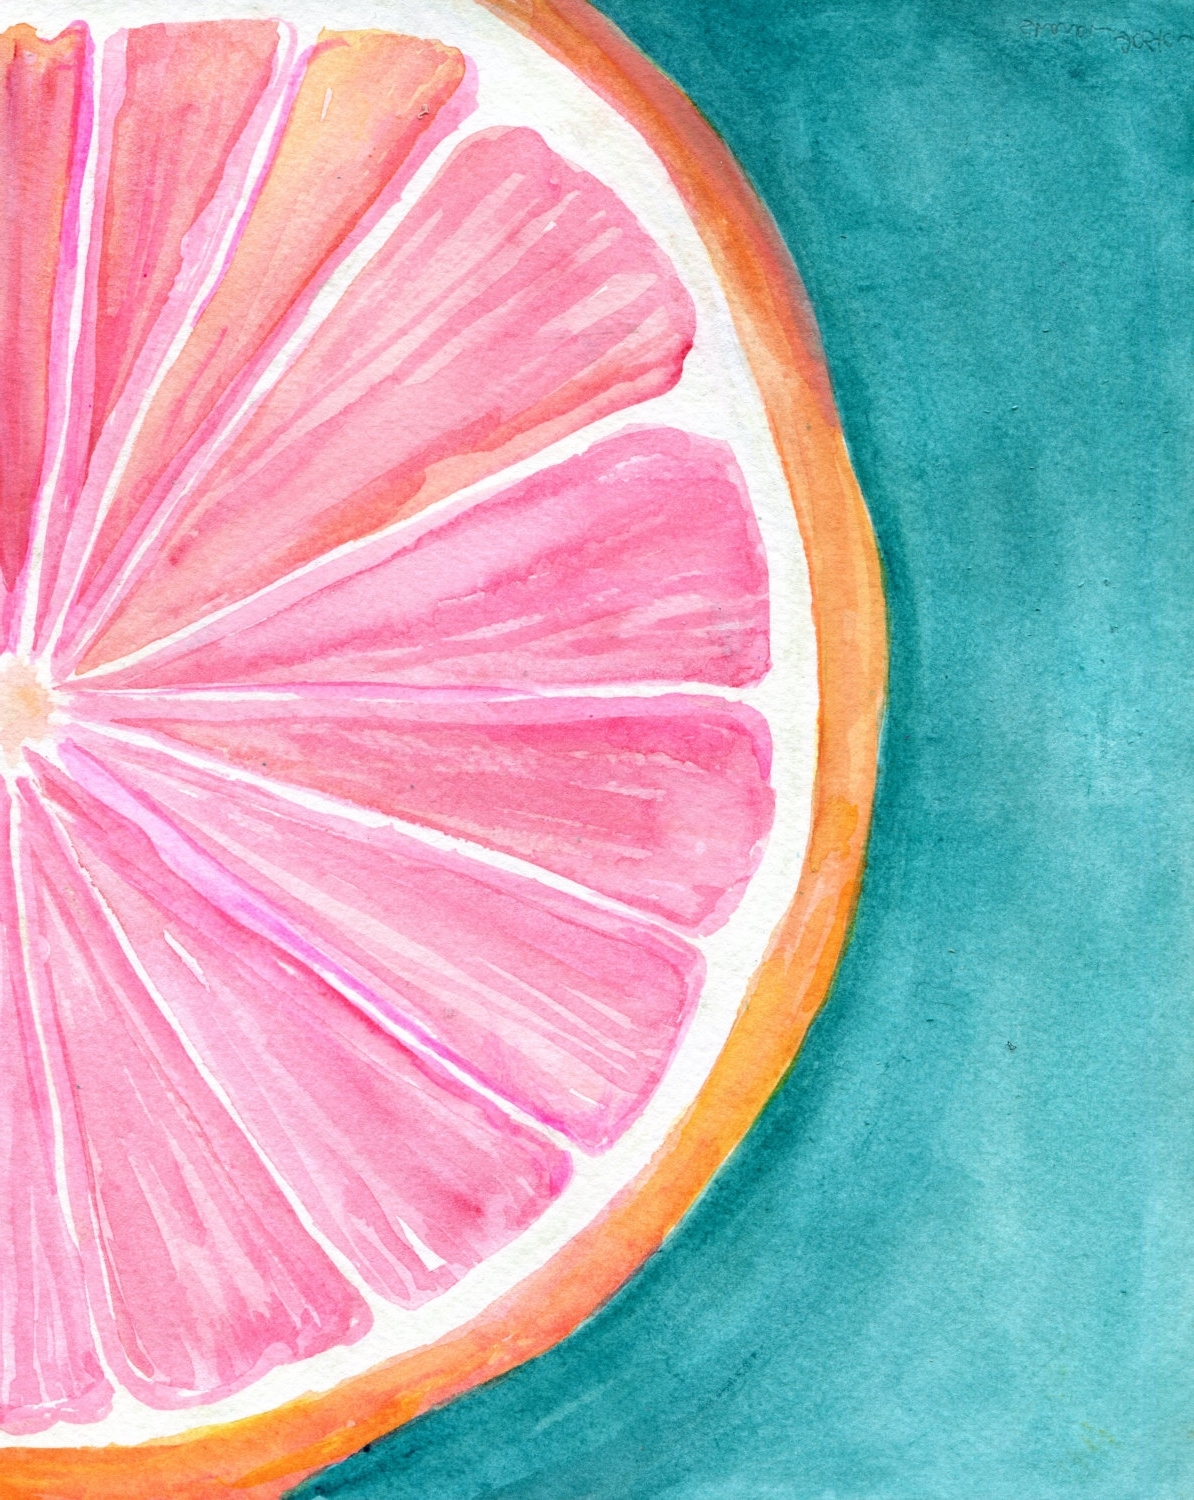 Most Recent Grapefruit On Turquoise Watercolor Painting, Original Citrus Art Inside Grape Colour Wall Art (View 13 of 15)